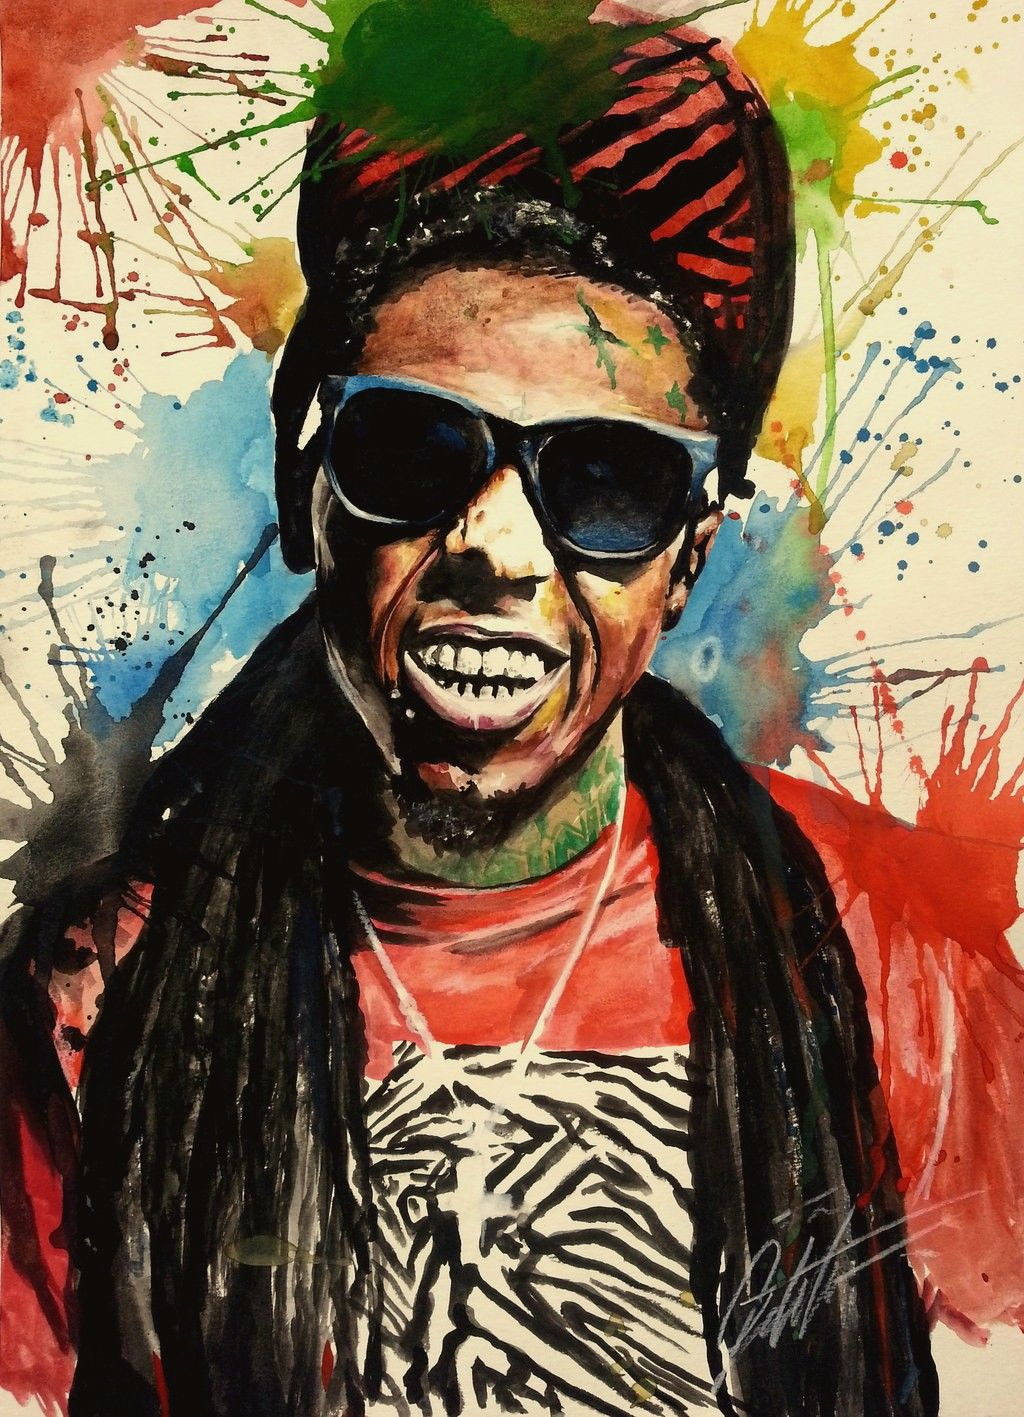 lil wayne hd wallpapers | hd wallpapers | pinterest | lil wayne